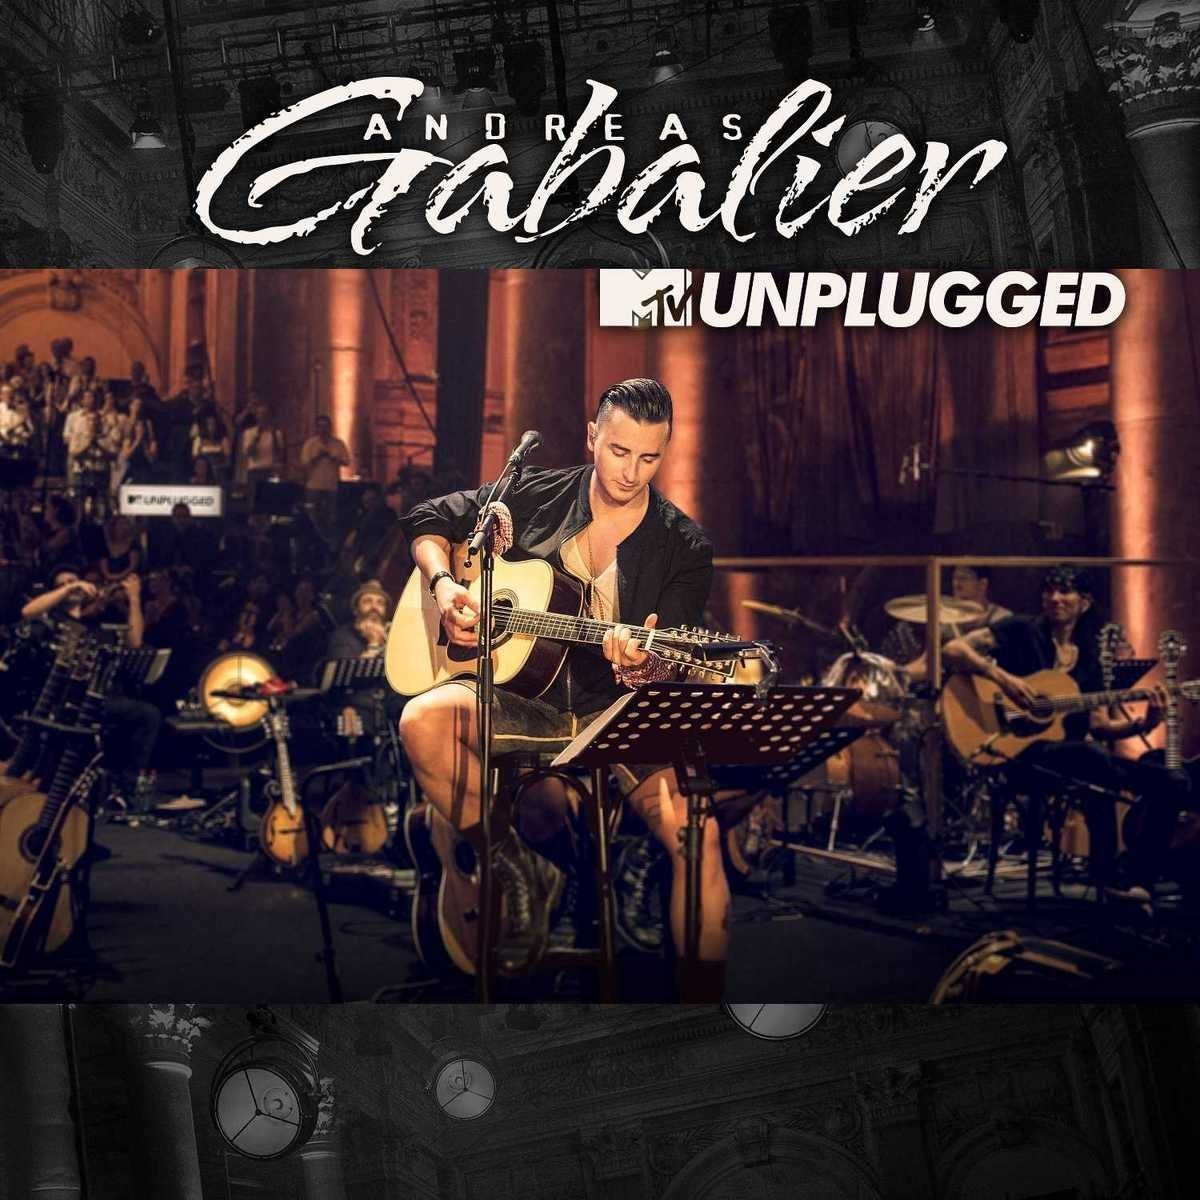 Andreas Gabalier - Mtv Unplugged album cover